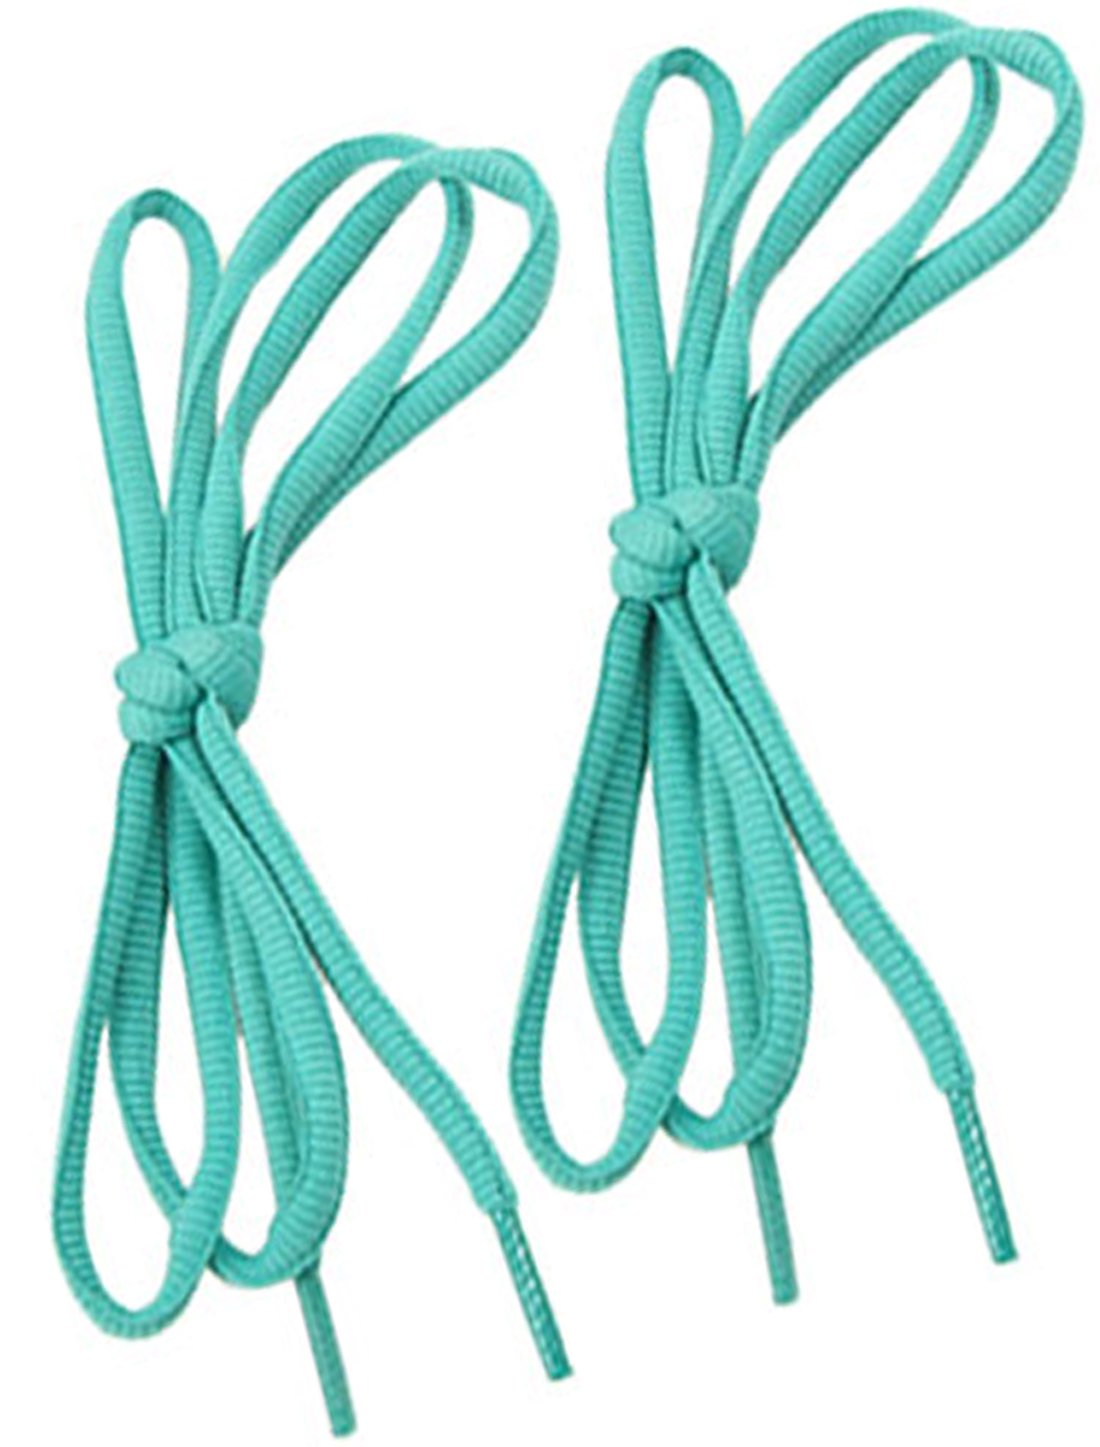 1 Pair Teal Color Sneakers Trainers Round Shoe Laces Strings Shoelaces